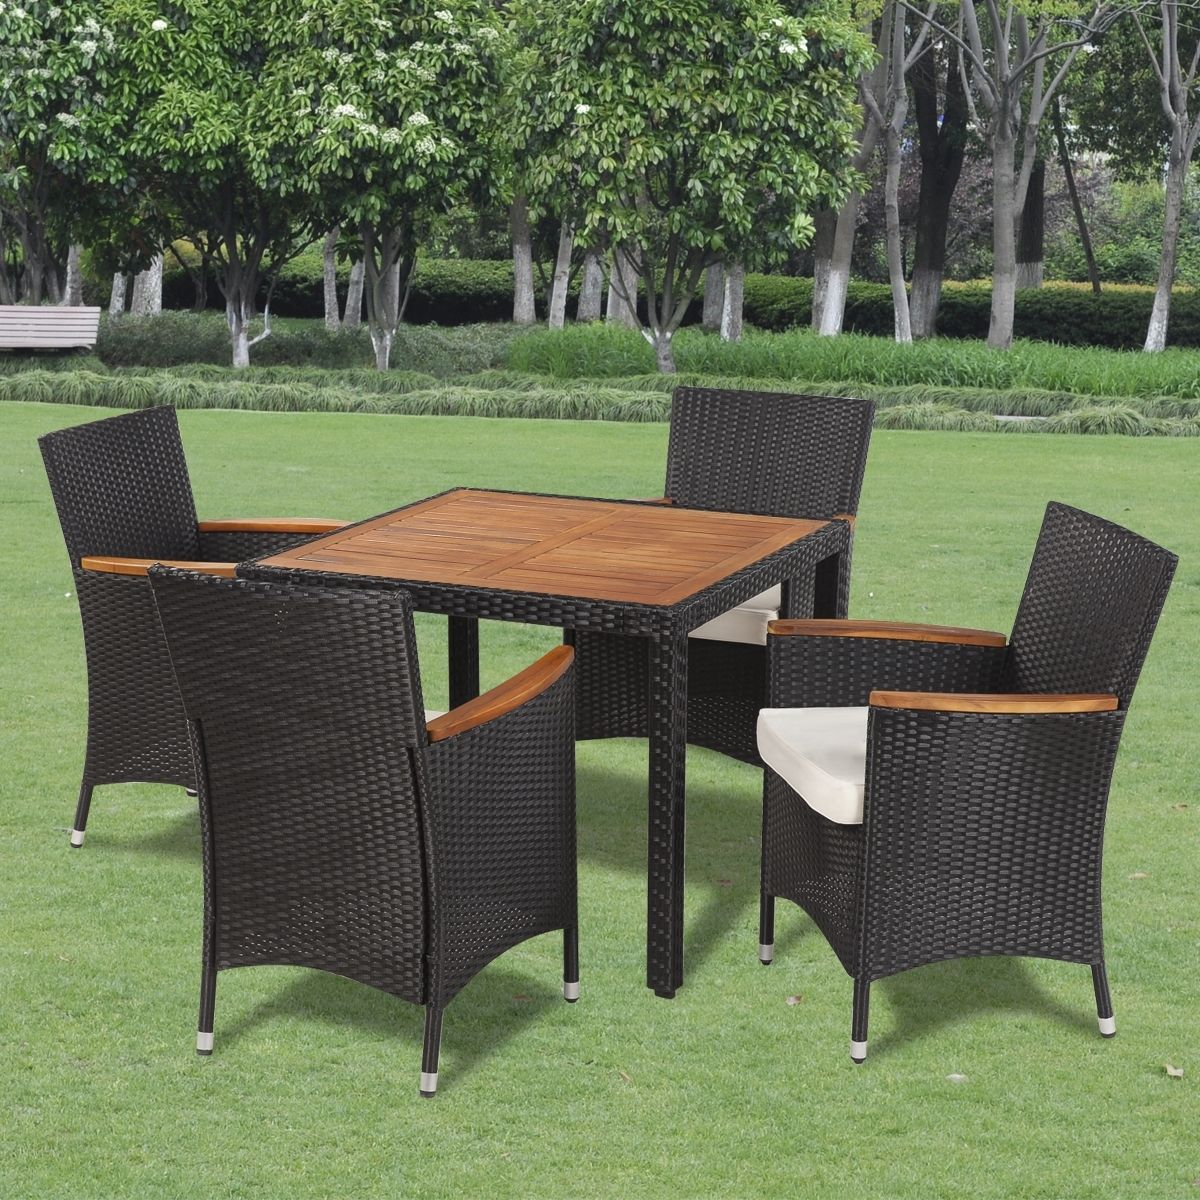 Stuhlkissen Outdoor 5pcs Dining Set Rattan Wicker Acacia Wooden Top Table 4 Chairs